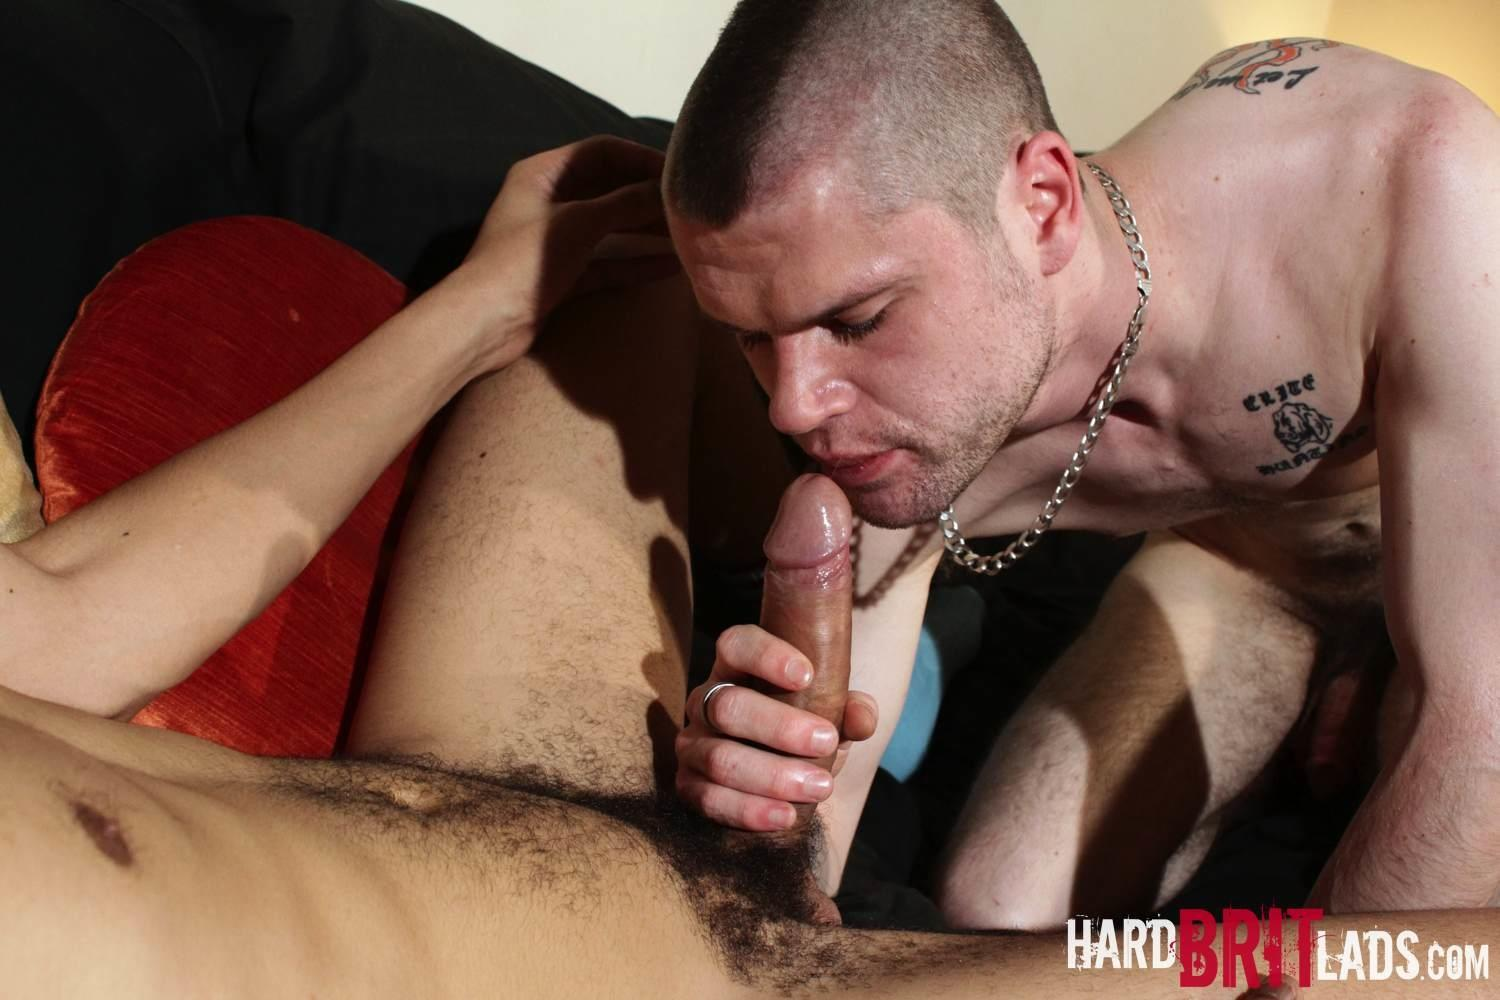 Hard-Brit-Lads-Shaun-Jones-and-Jay-T-Bisexual-Skinhead-Sucking-First-Big-Cock-Amateur-Gay-Porn-11 Hung Amateur Bisexual British Skinhead Sucks His First Cock Ever